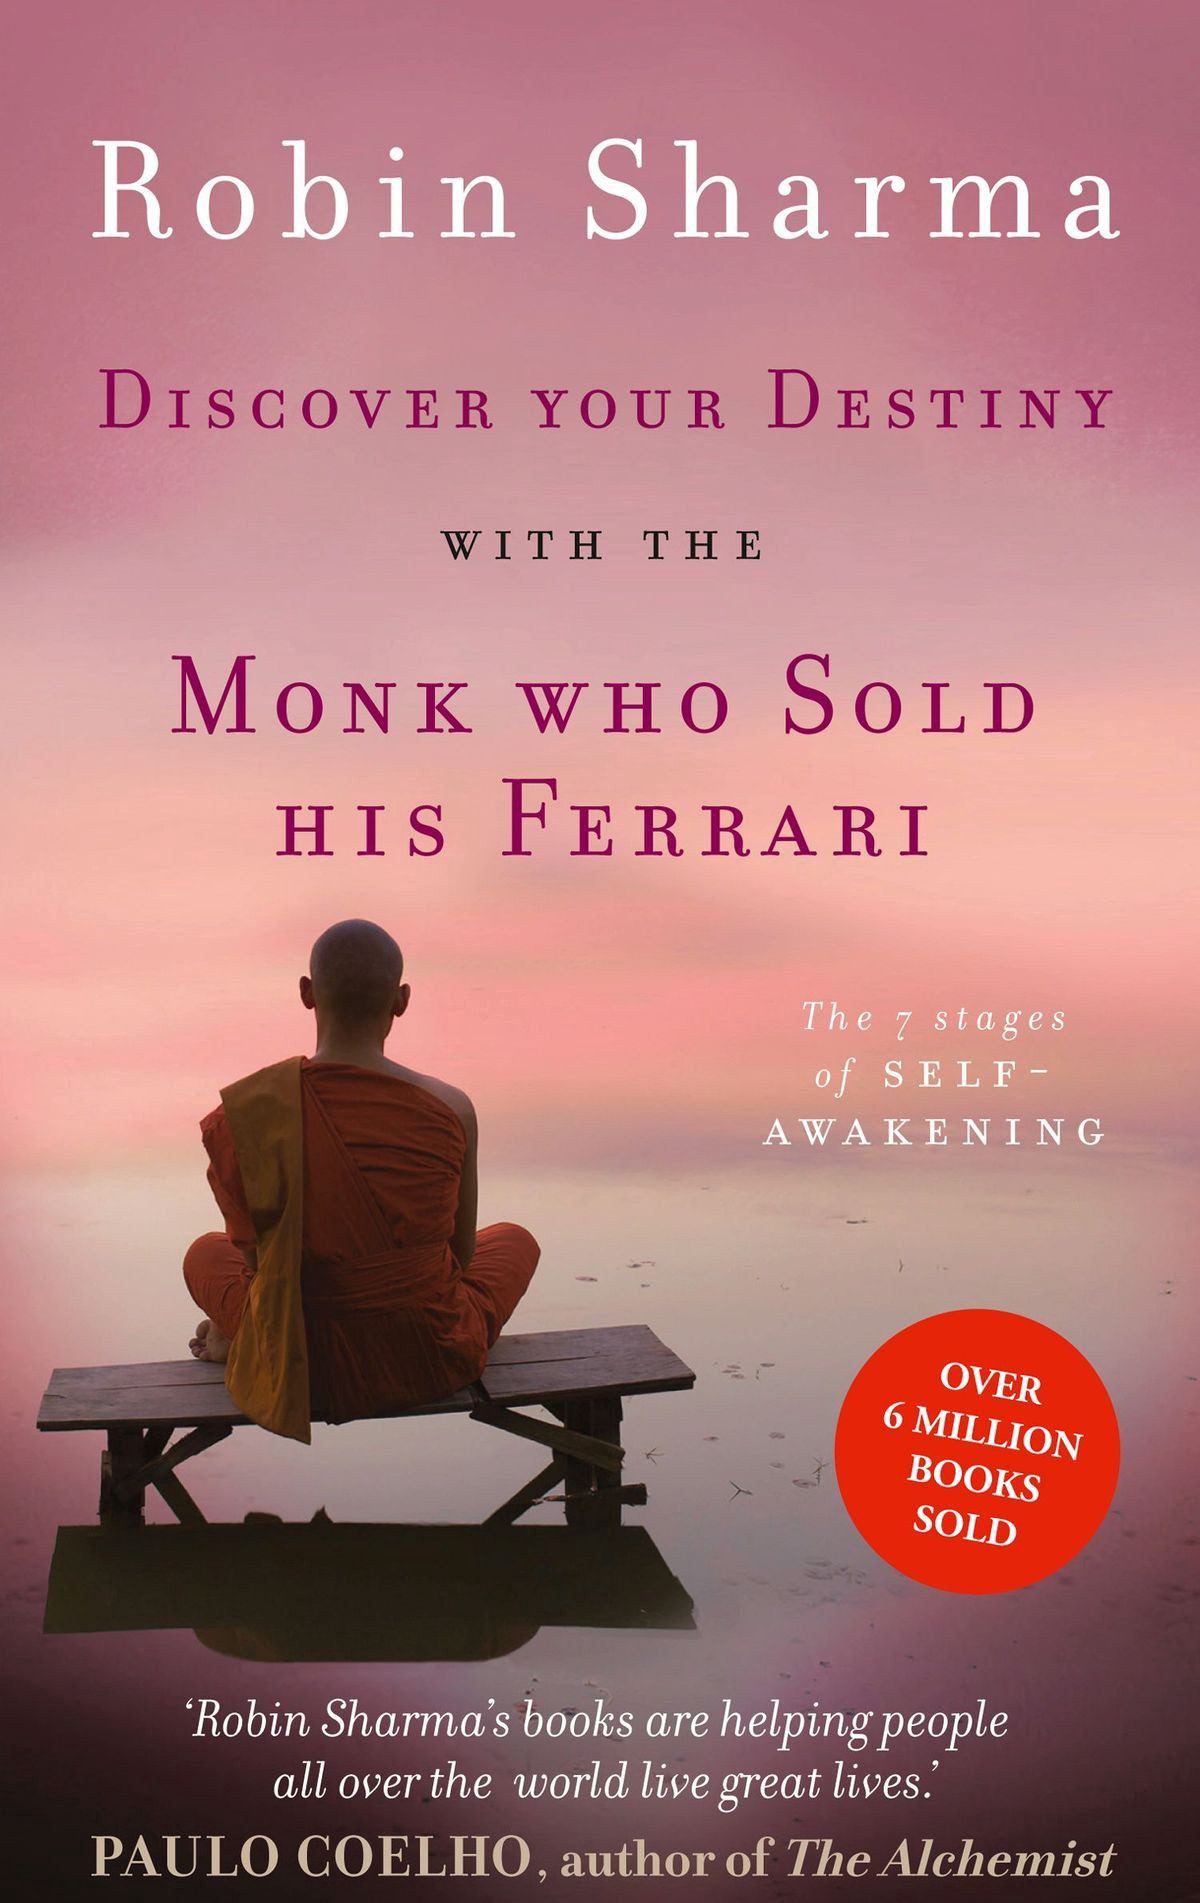 126 Words Of Wisdom From The Monk Who Sold His Ferrari By Robin Sharma By Motolani Oyafemi Medium